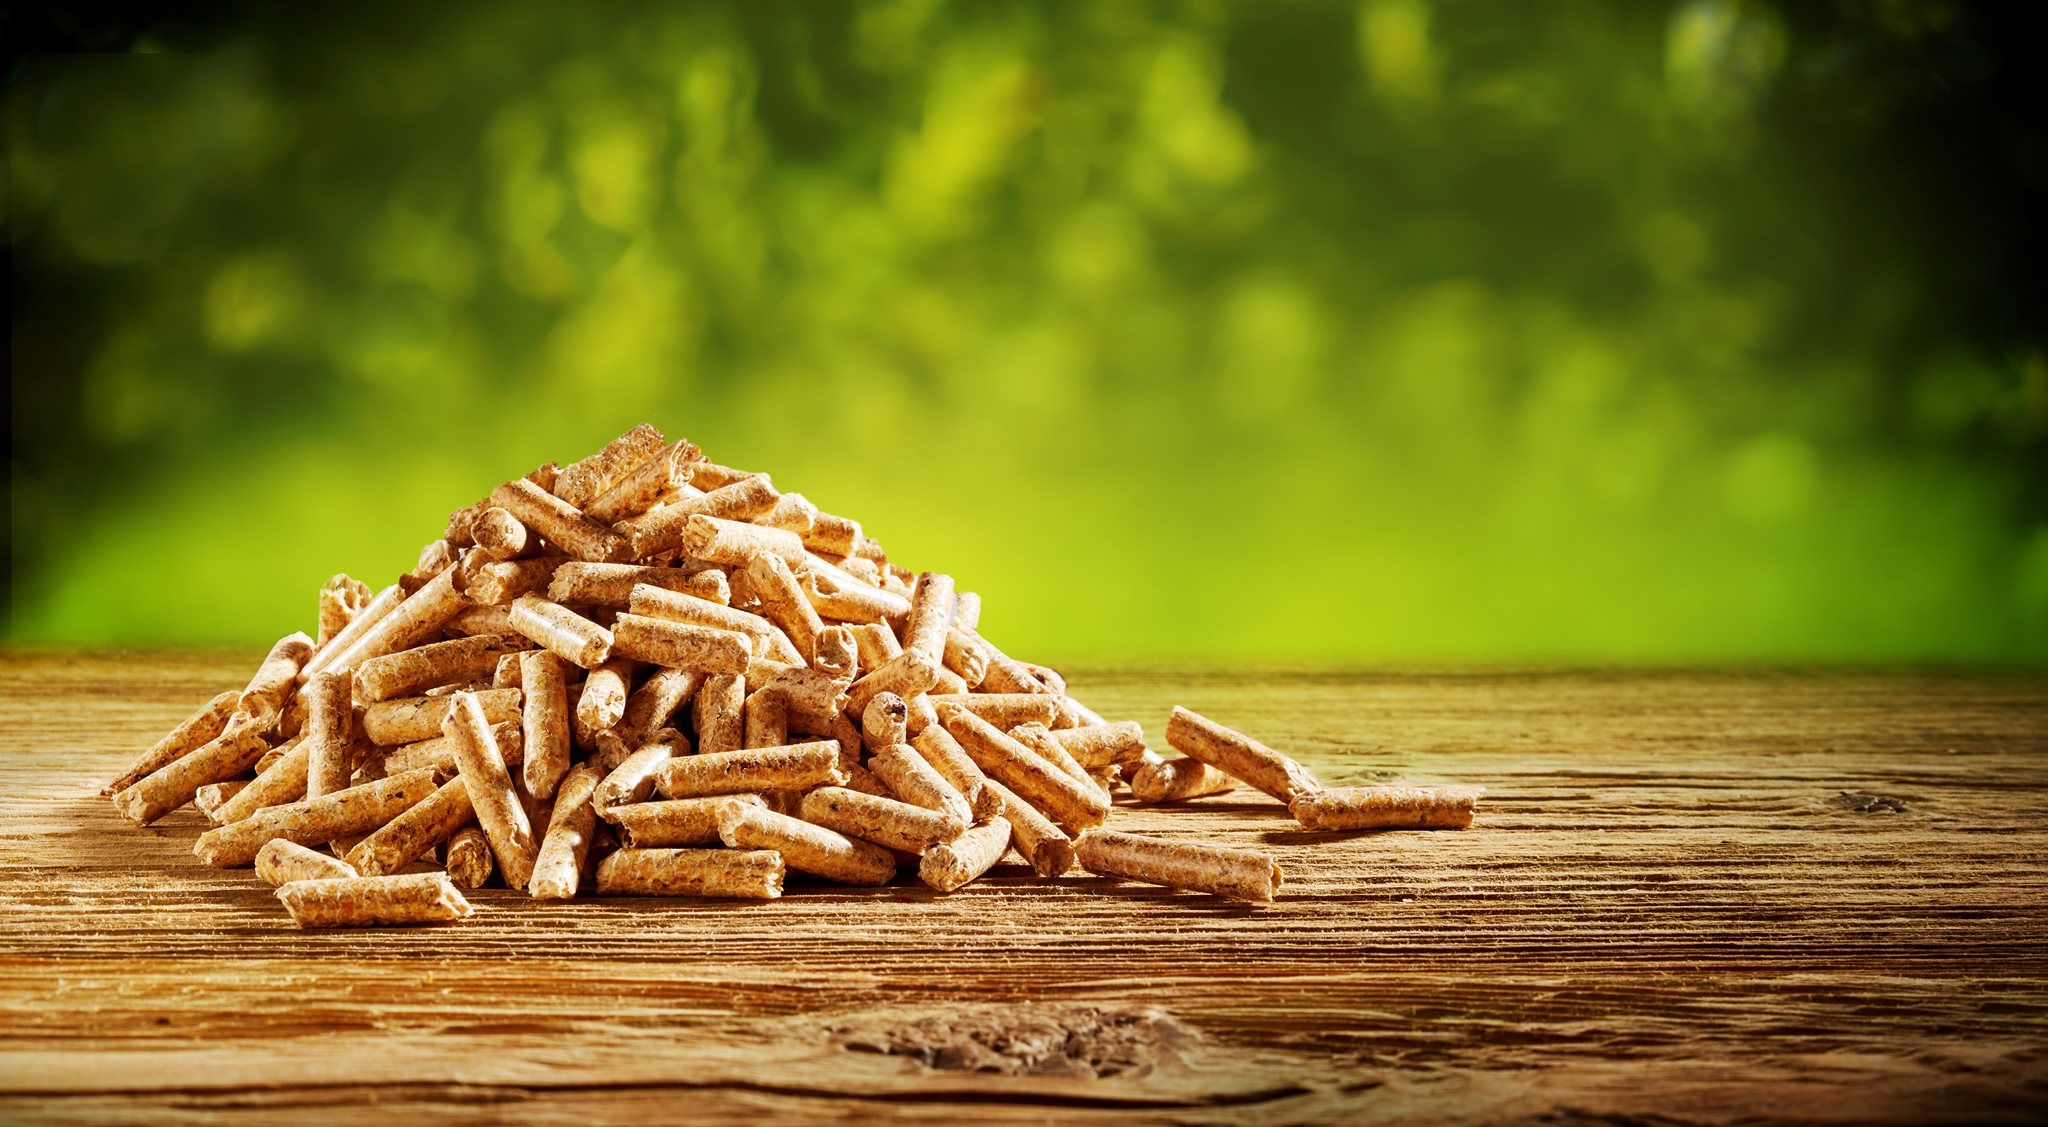 Wood Pellet Fuel | Products and services | Home